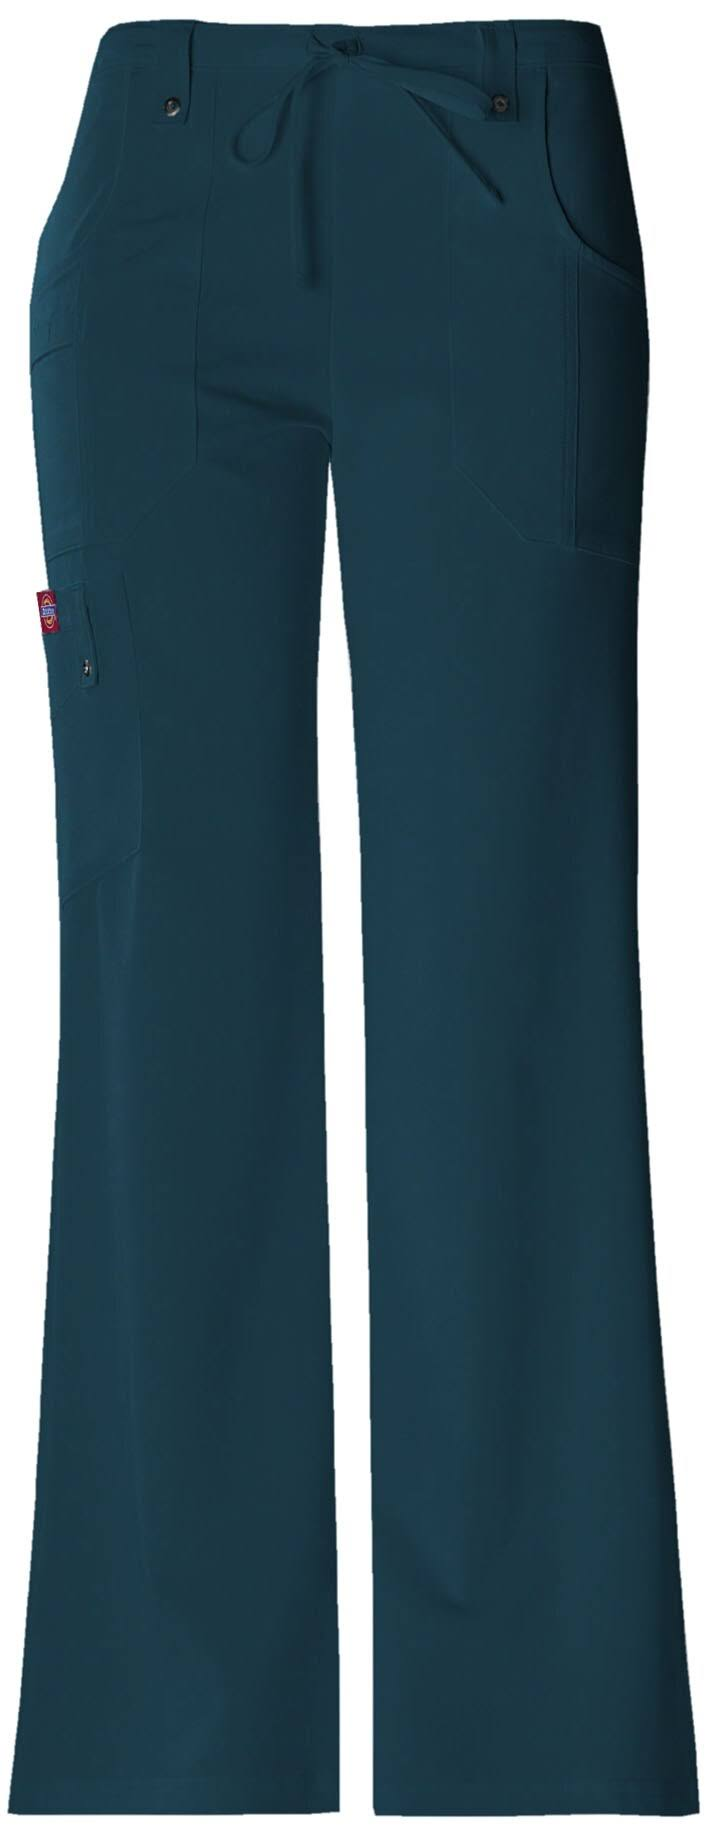 Dickies Women's Xtreme Stretch Fit Drawstring Flare Leg Pant - Caribbean, Small